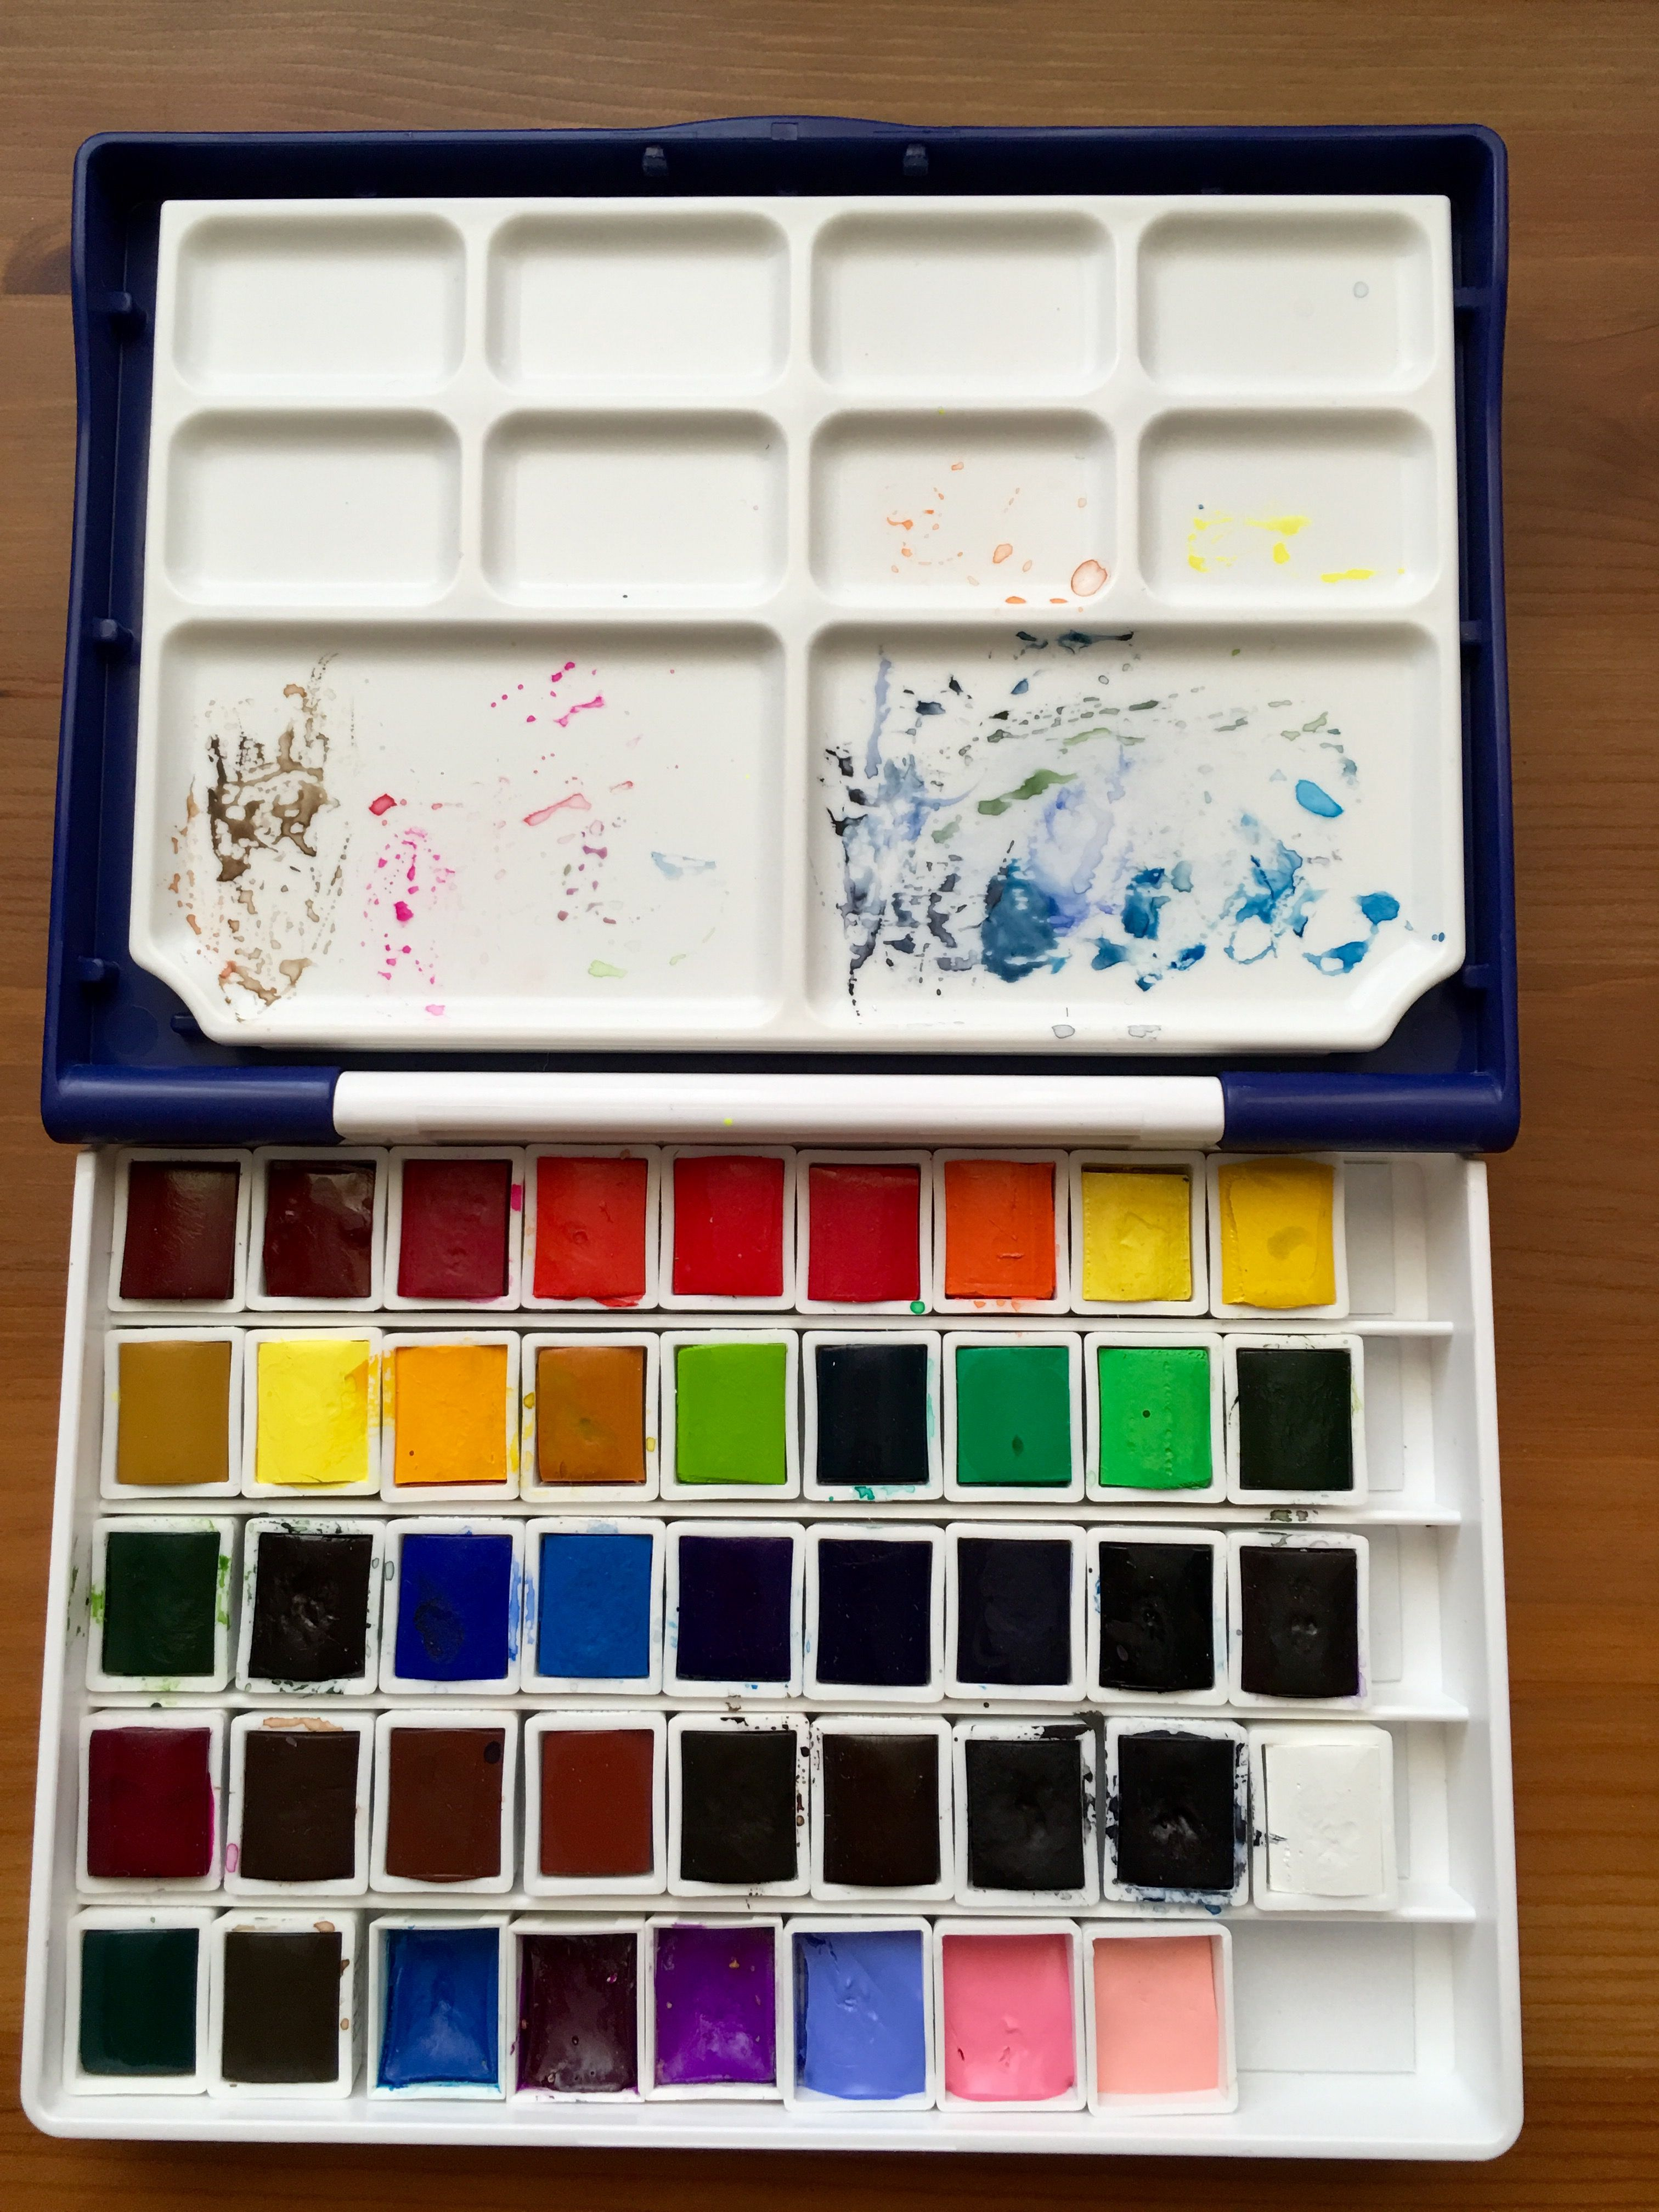 Doodlewash Review Holbein Watercolors Materiales De Dibujo Y